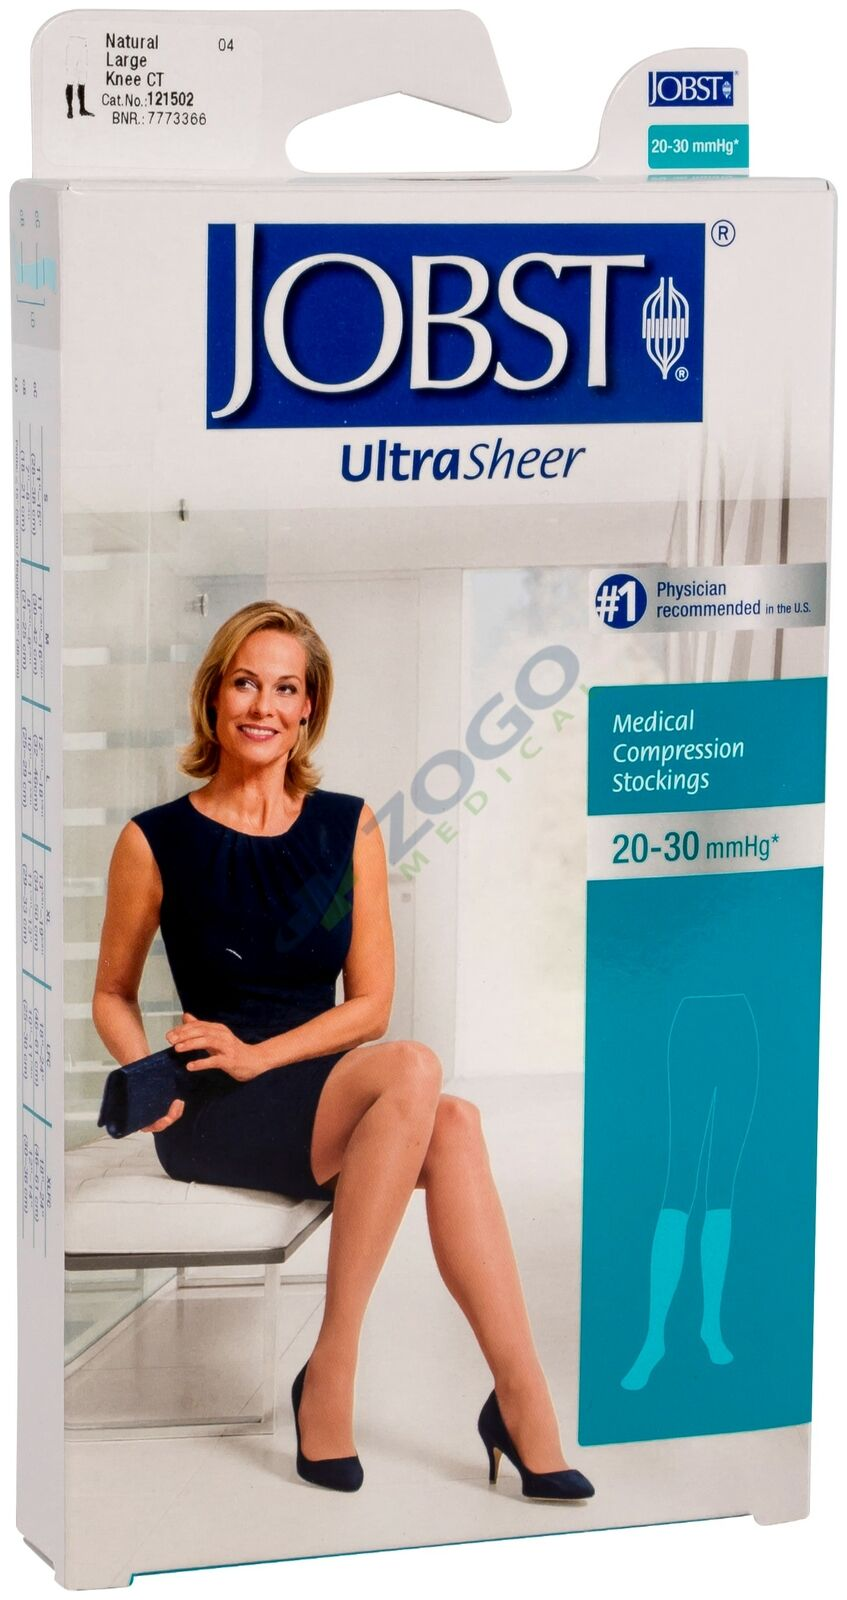 f72be7a433 JOBST Ultrasheer 20-30 mmHg Knee High Closed Toe Small Natural 121500 for  sale online | eBay